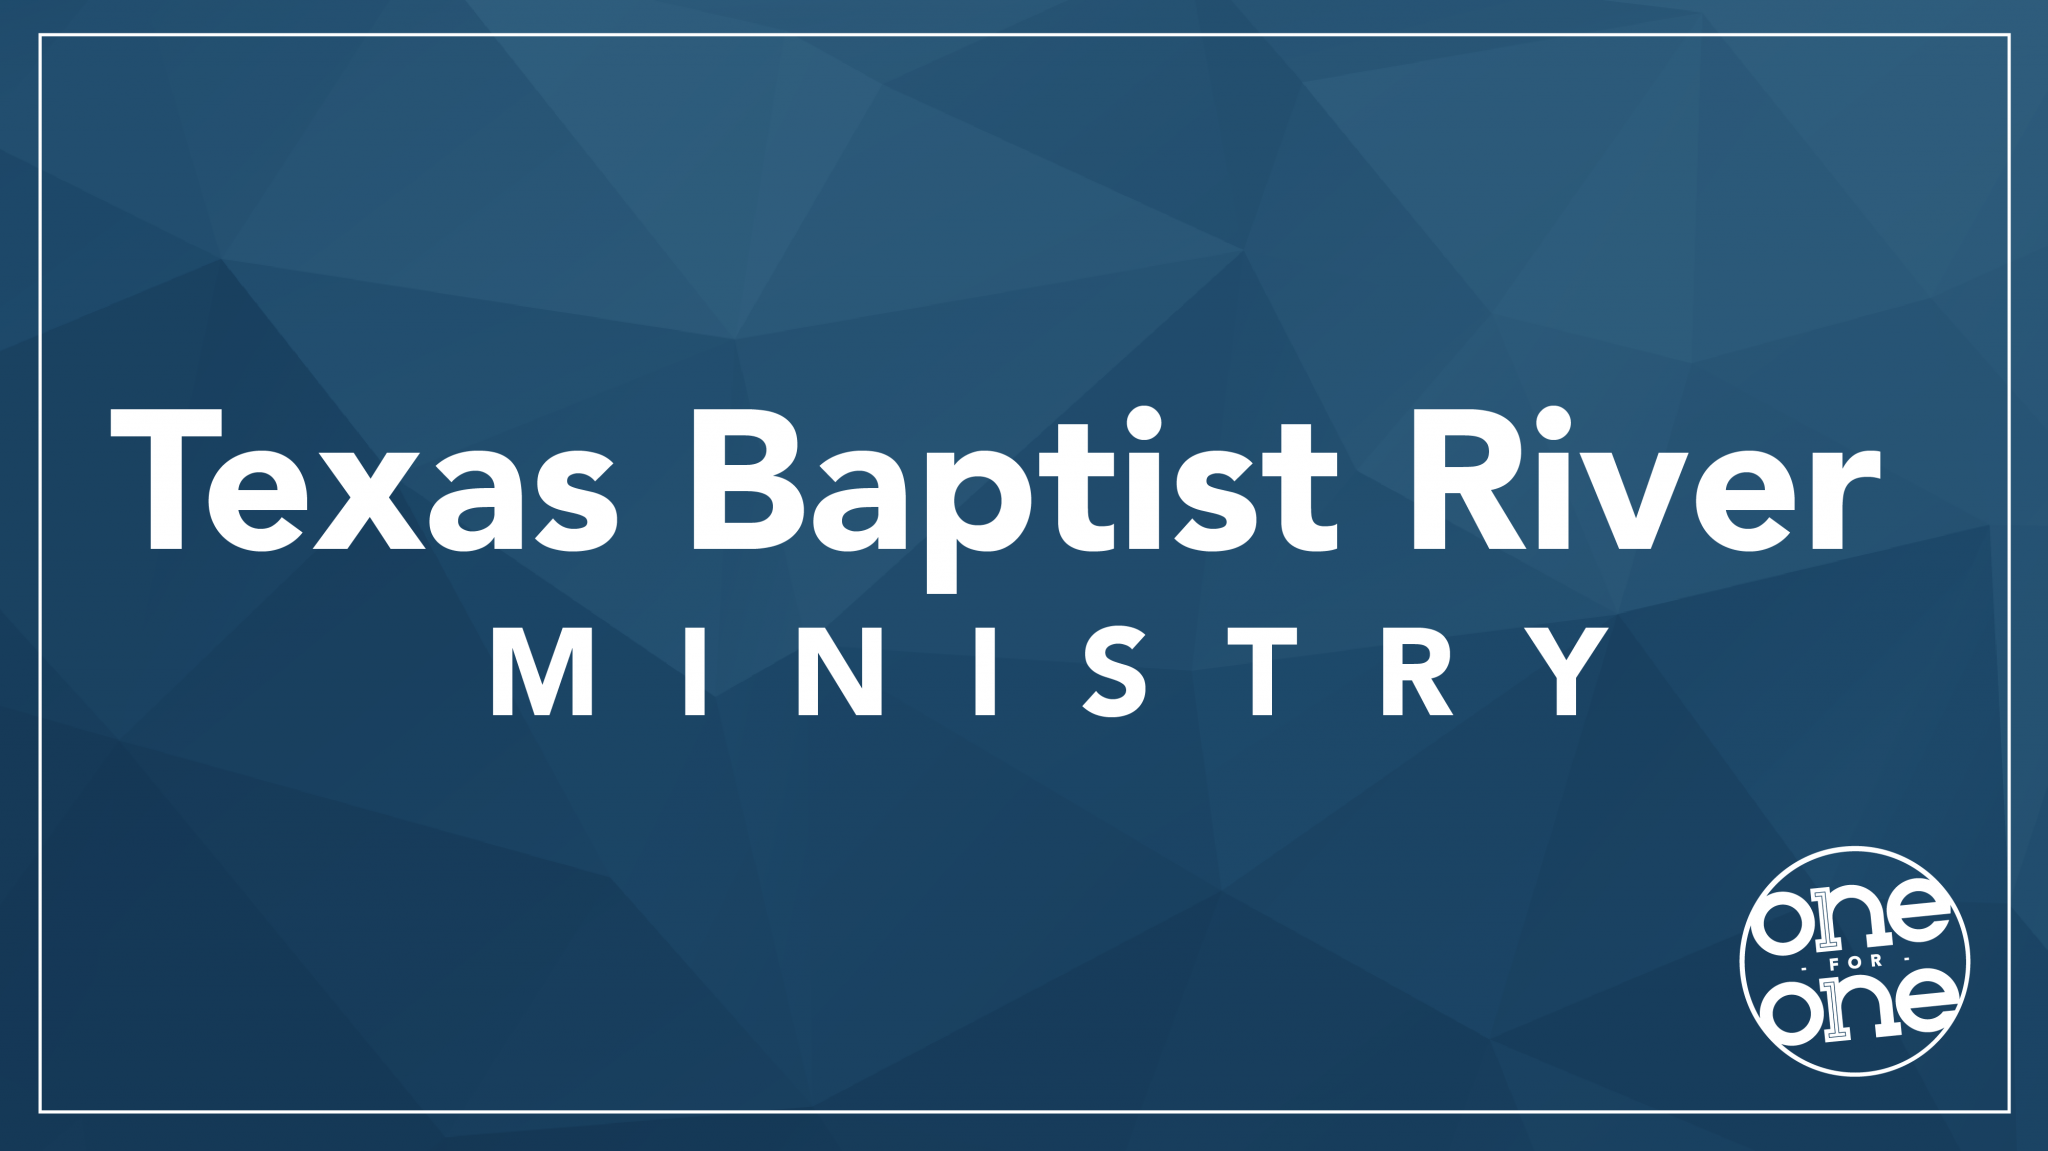 Texas Baptist River Ministry